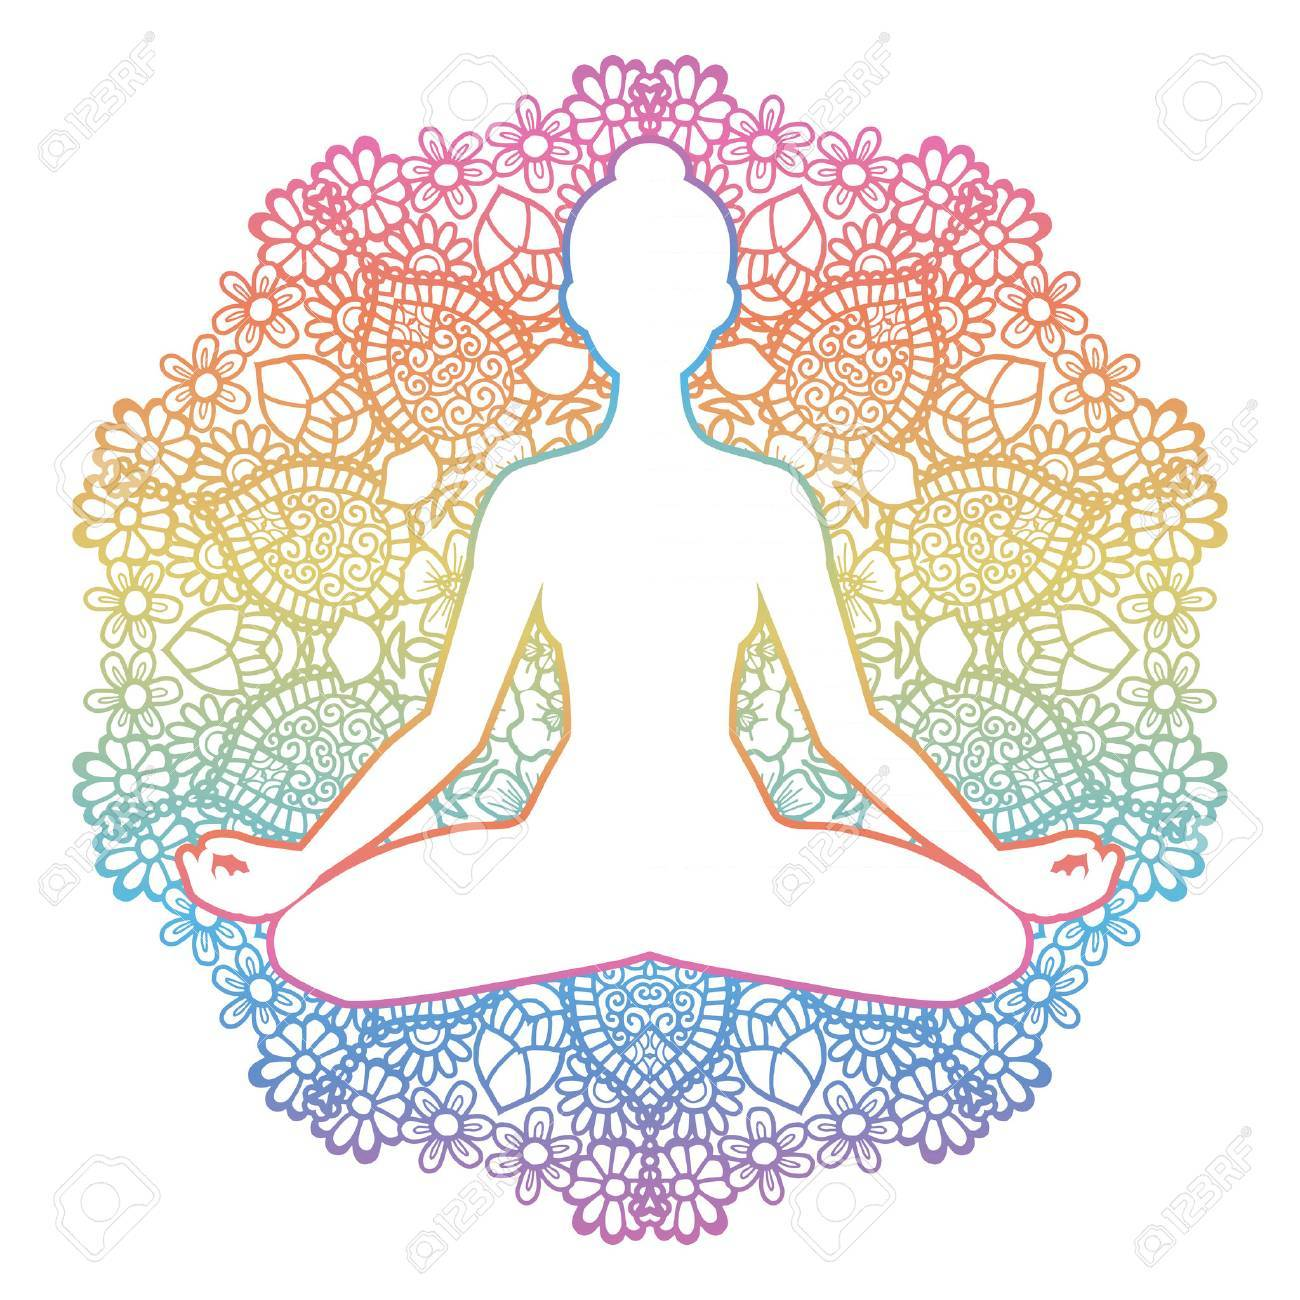 Women Silhouette Mandala Round Background Yoga Lotus Pose Royalty Free Cliparts Vectors And Stock Illustration Image 69147102